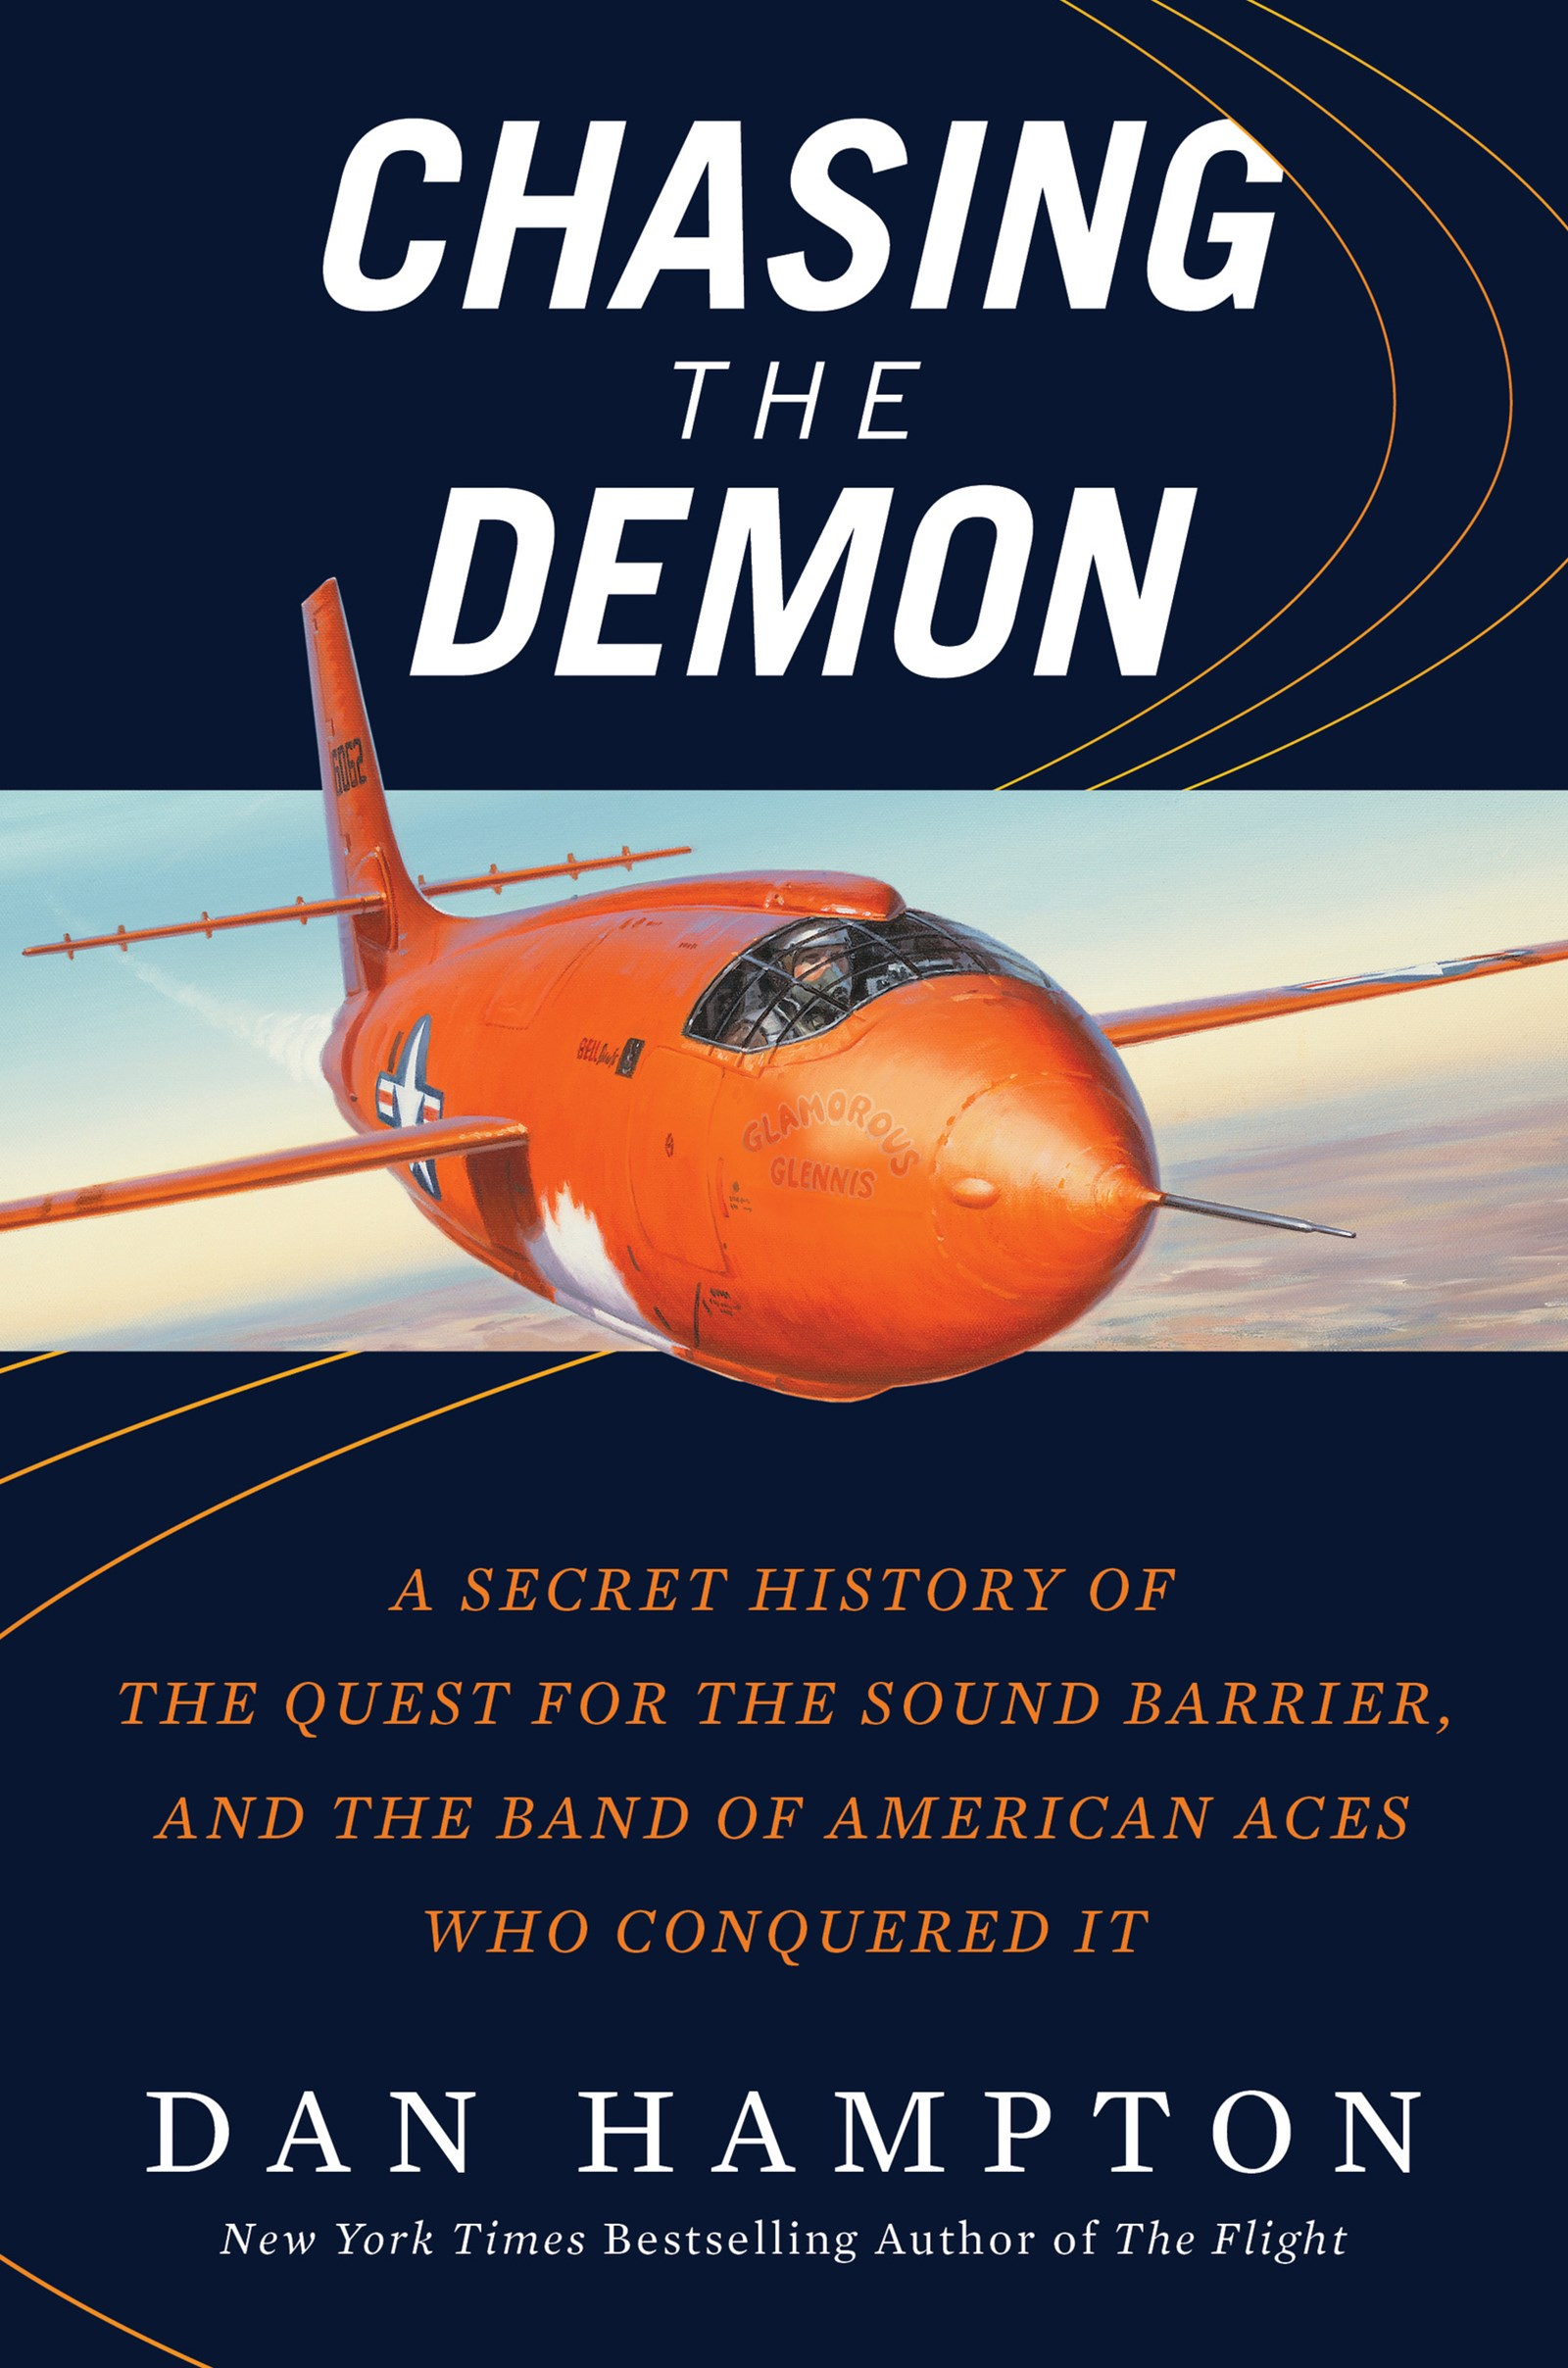 Chasing the Demon: Chuck Yeager and the Band of American Aces Who Conquered the Sound Barrier